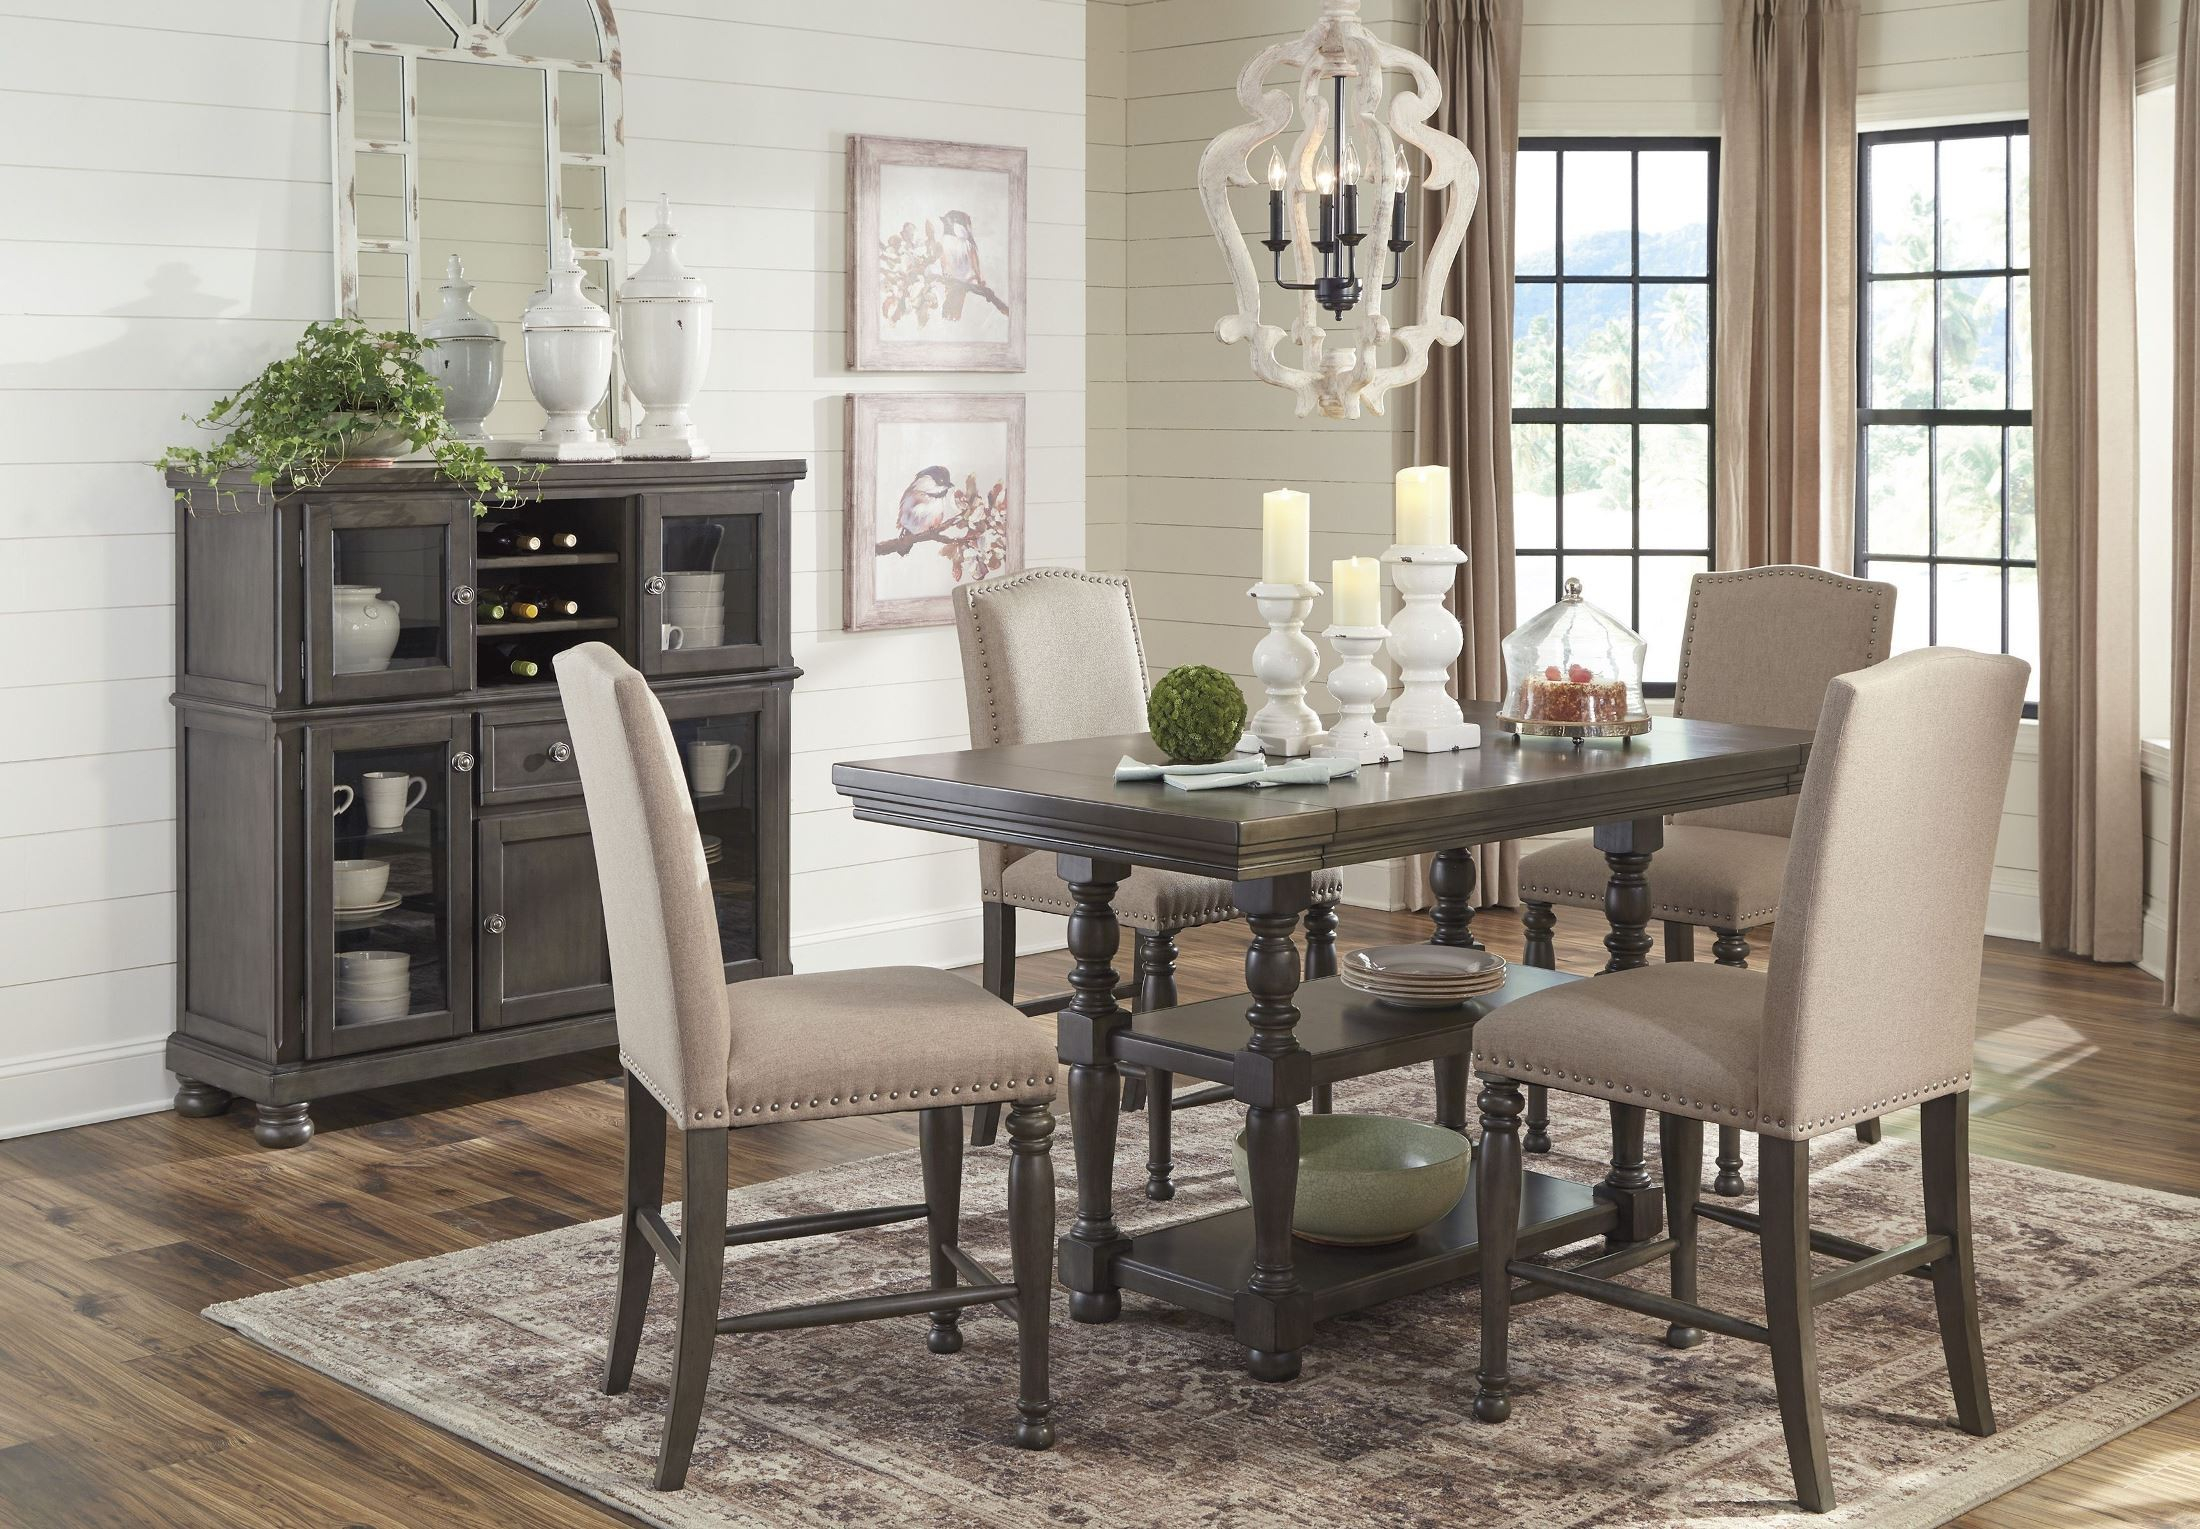 Audberry Gray Rectangular Extendable Counter Height Dining Room Set throughout Living Room And Dining Room Sets